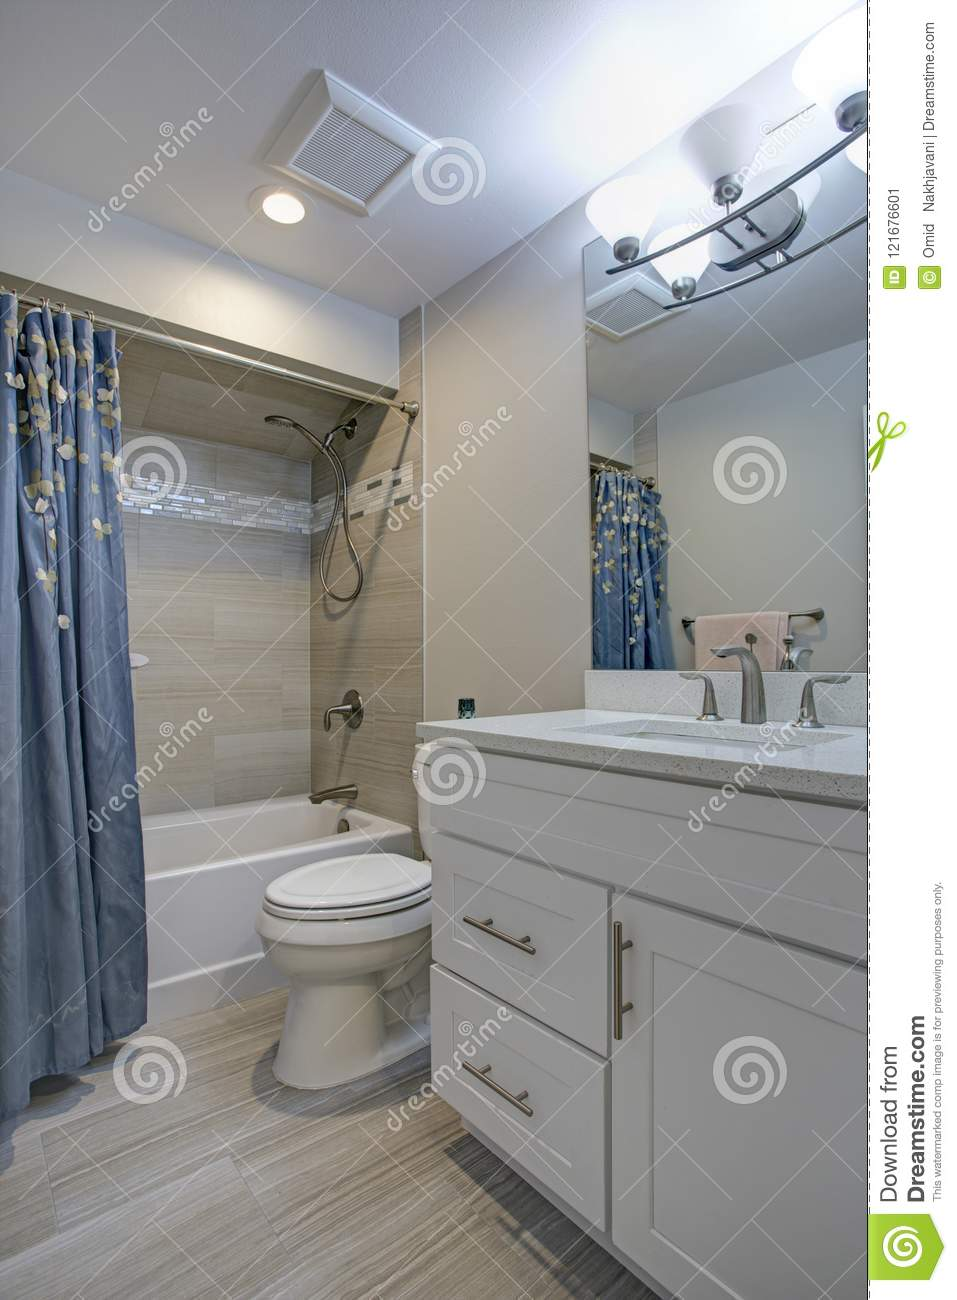 Elegant Bathroom With Marble Bathroom Floor Stock Image Image Of Building Glass 121676601